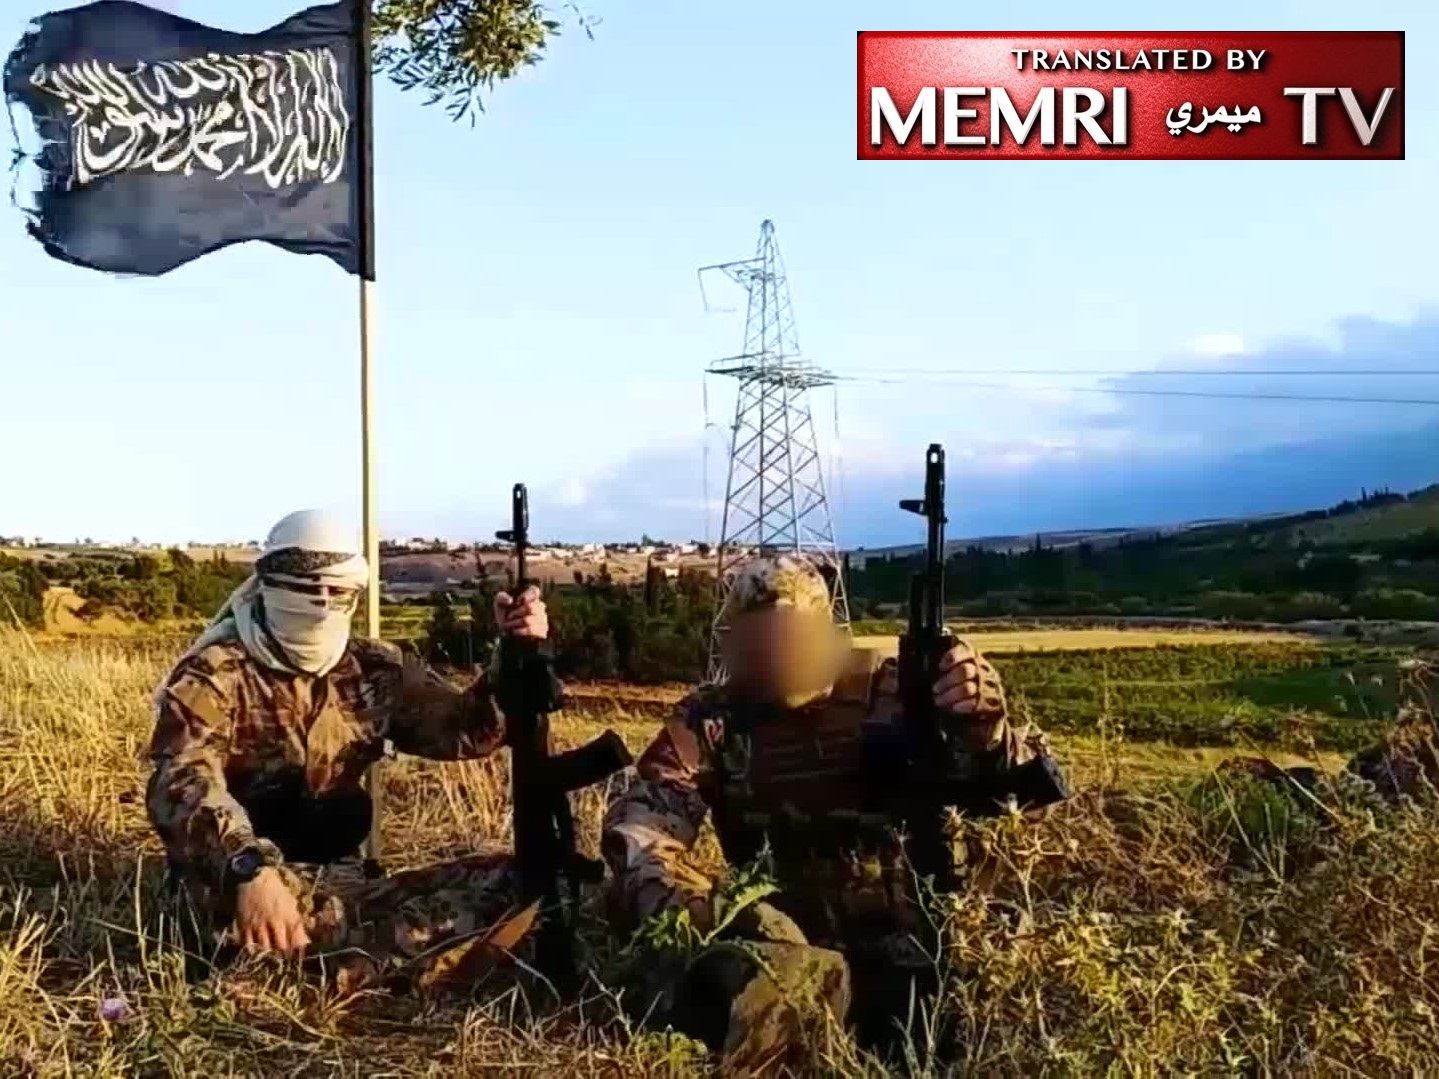 German-Speaking Jihadists Call On Their 'Siblings' to Join Them and Wage Jihad in Syria